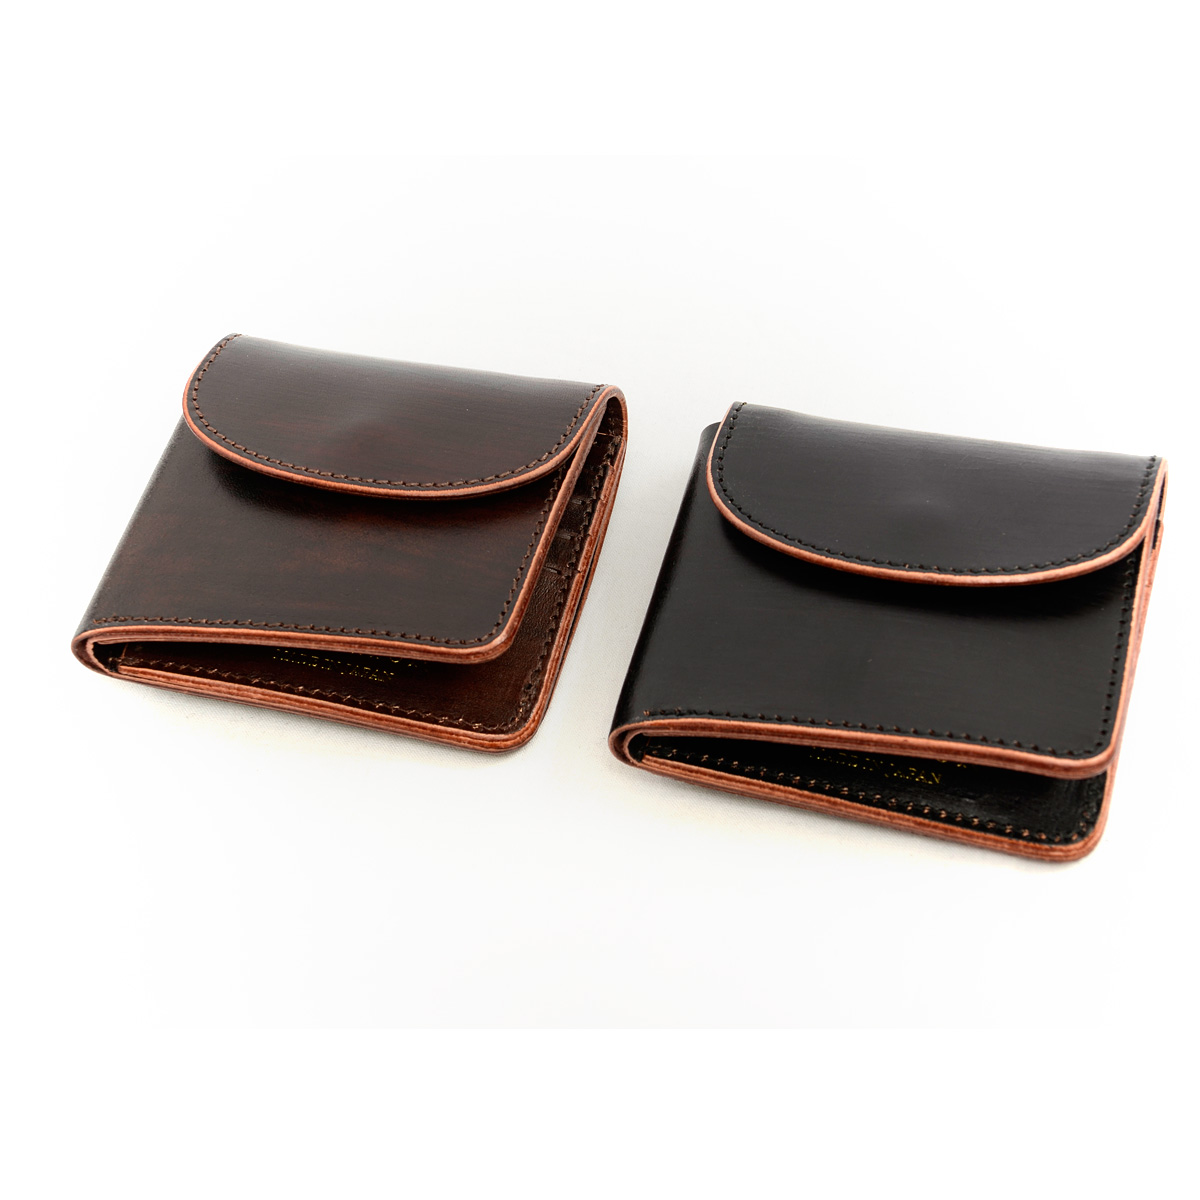 Inception INCEPTION wallet mens short wallet leather Leather Brown core IPCH-02 wallet